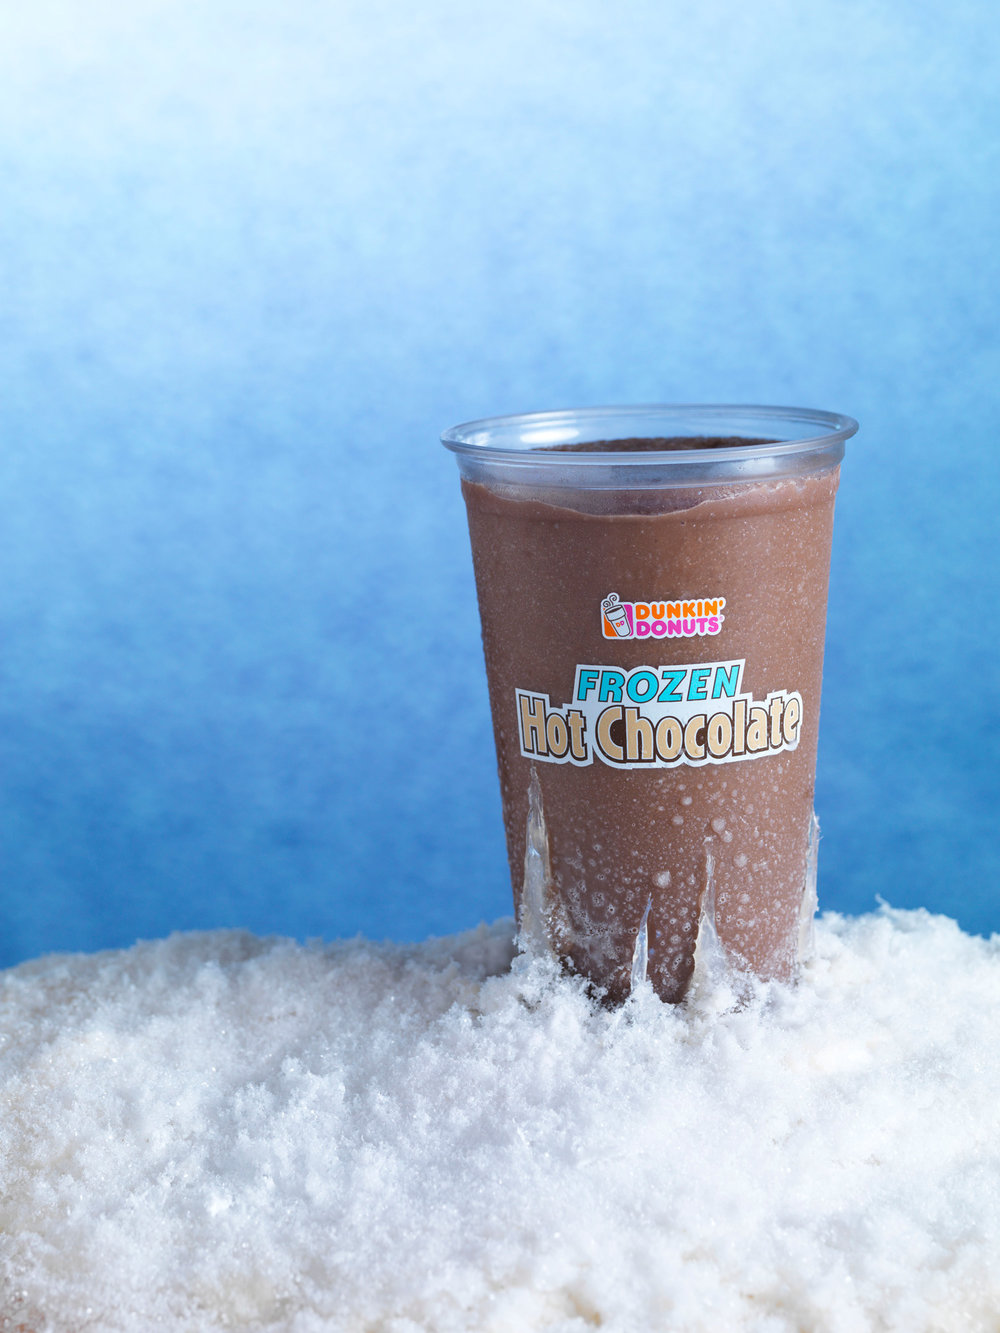 Frozen_hot_choco_0382_Whip0000.jpg